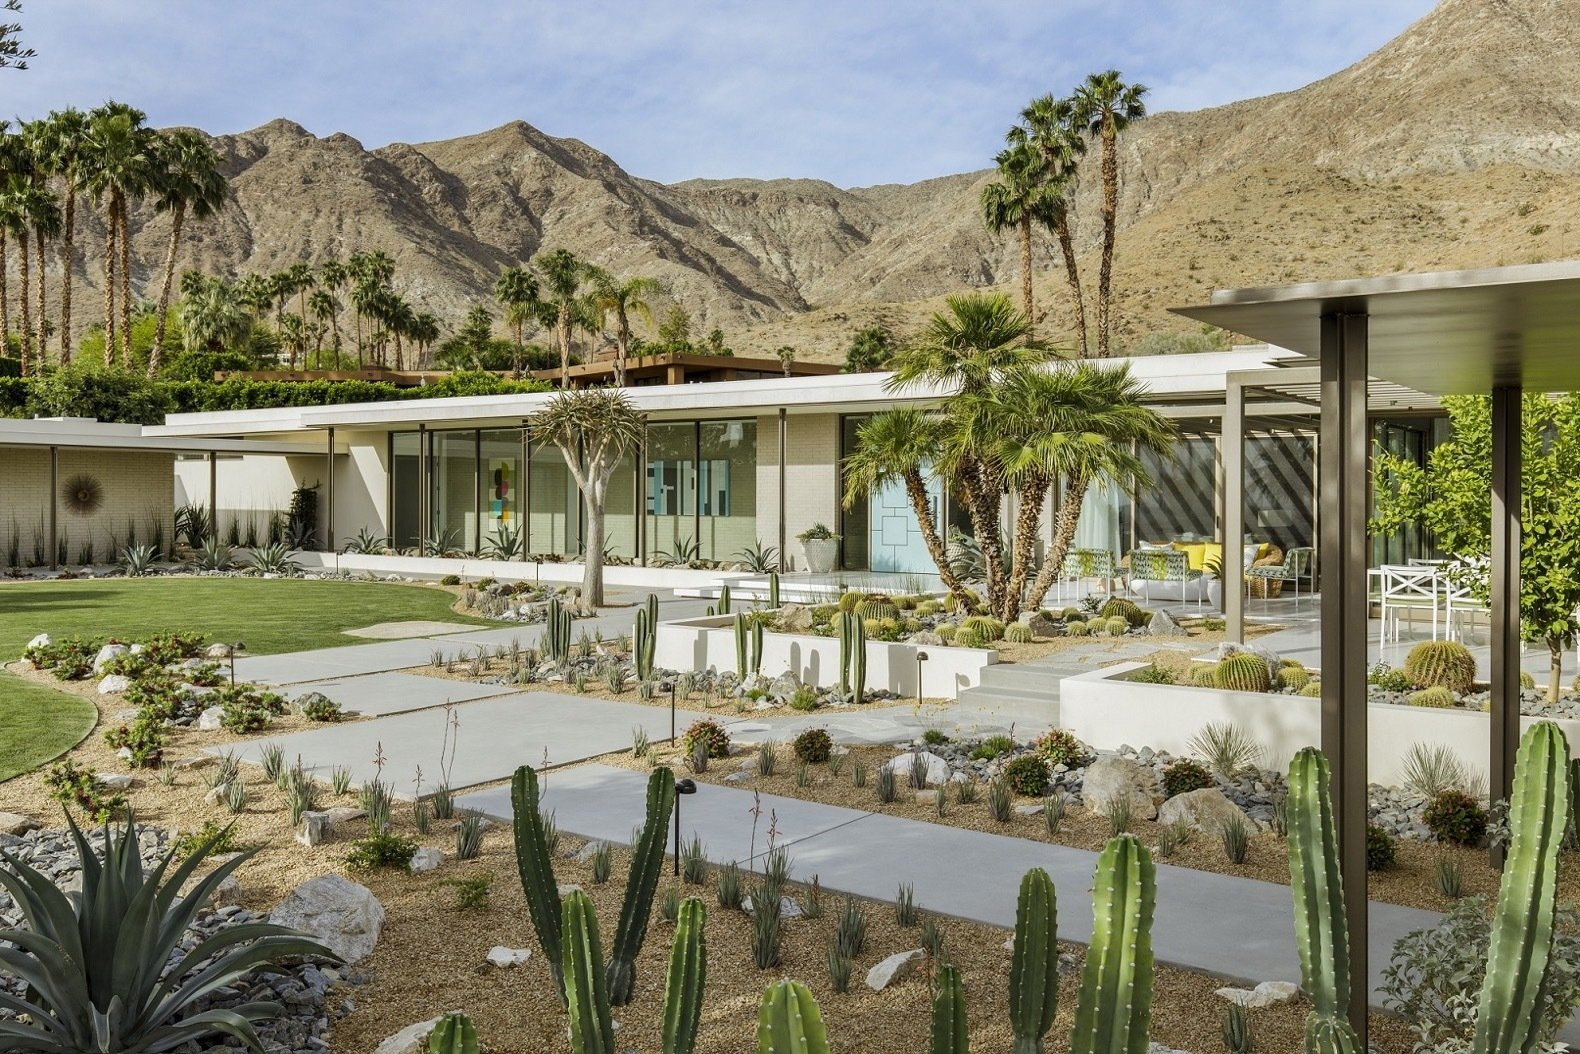 Exterior, Flat RoofLine, Glass Siding Material, Brick Siding Material, and House Building Type The Thunderbird Heights house is set on a plateau above Coachella Valley and backs up to the Santa Rosa mountains to the south and west.